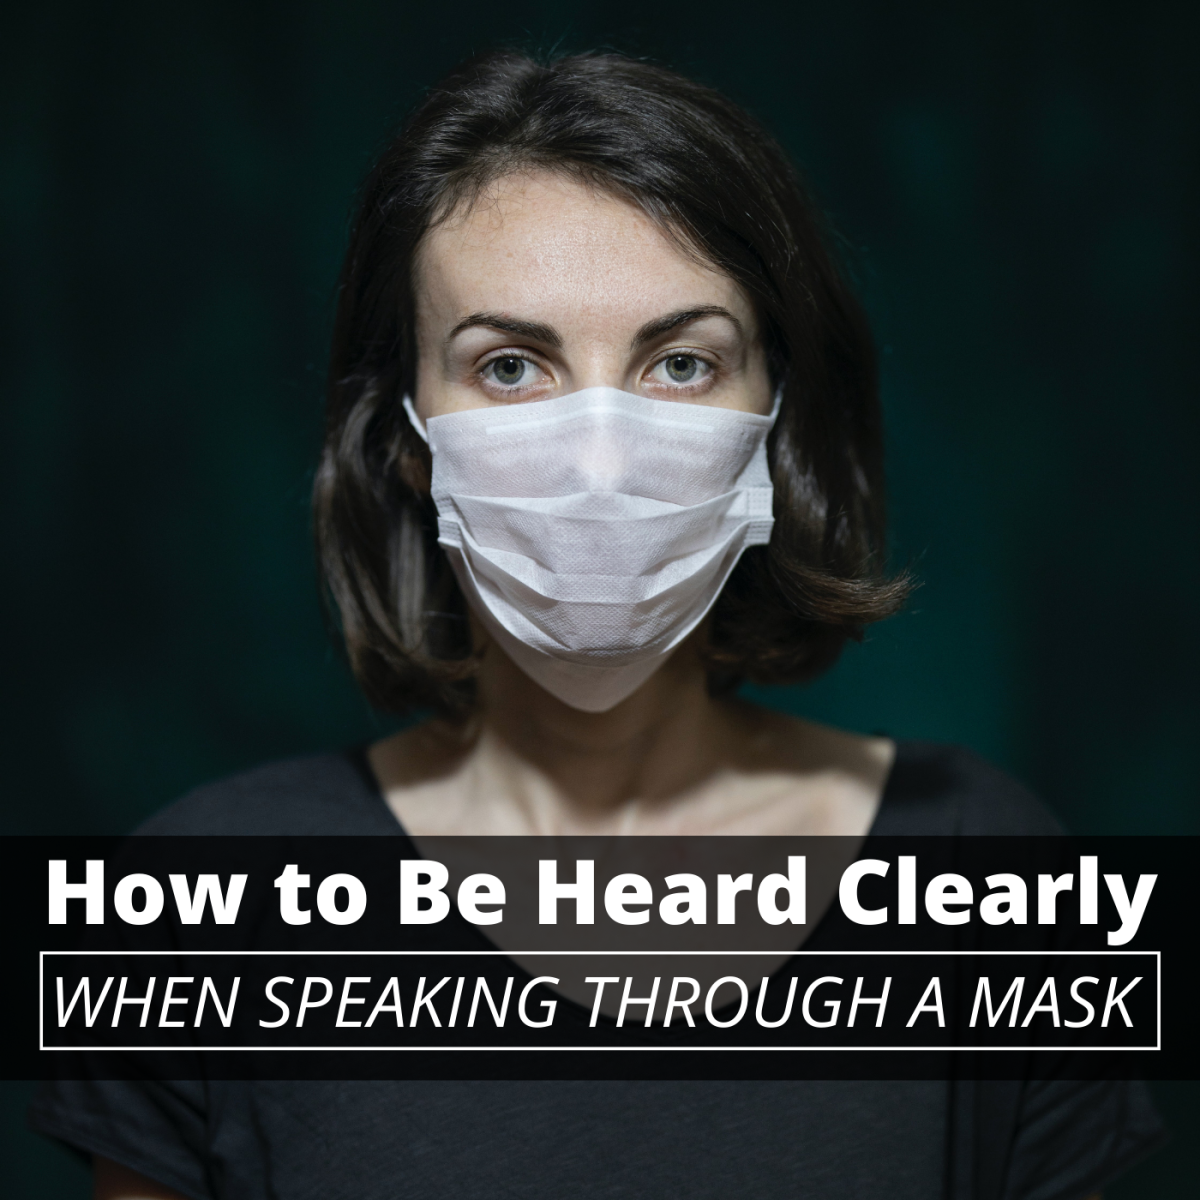 Facemasks are great for preventing the spread of disease, but they can also make communication more difficult.